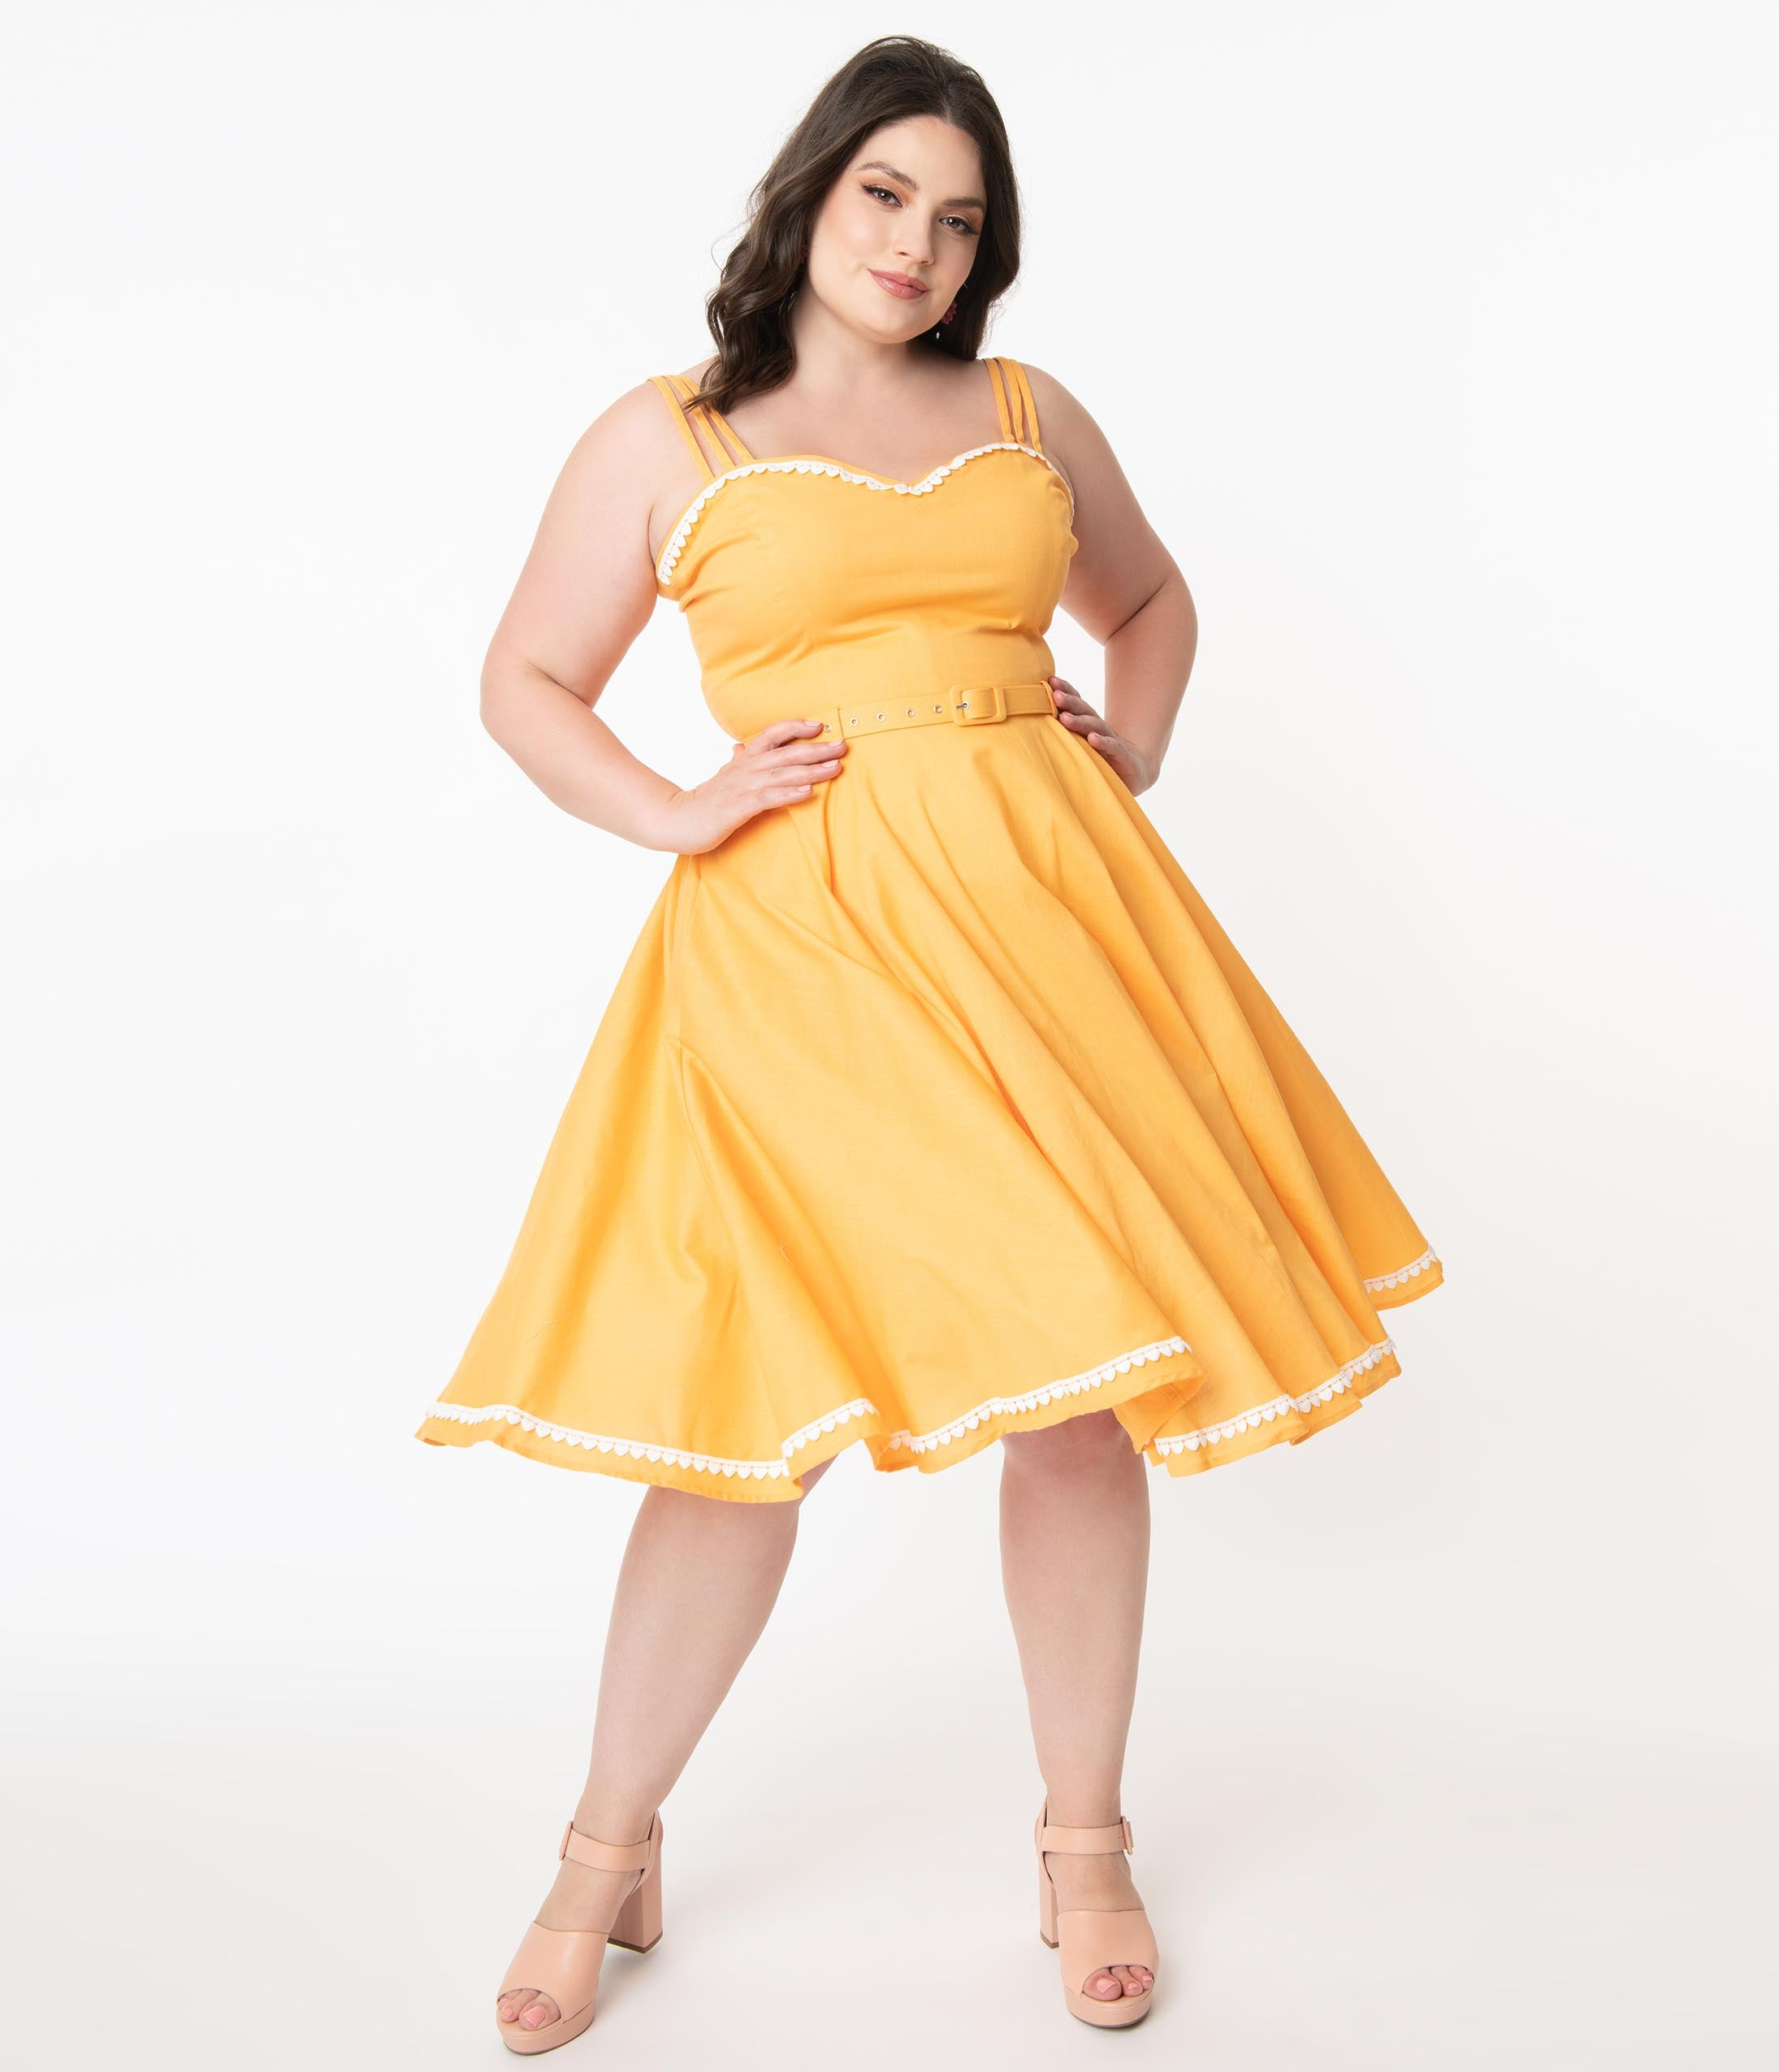 1950s Plus Size Dresses, Swing Dresses Collectif Plus Size Retro Orange Nova Swing Dress $84.00 AT vintagedancer.com